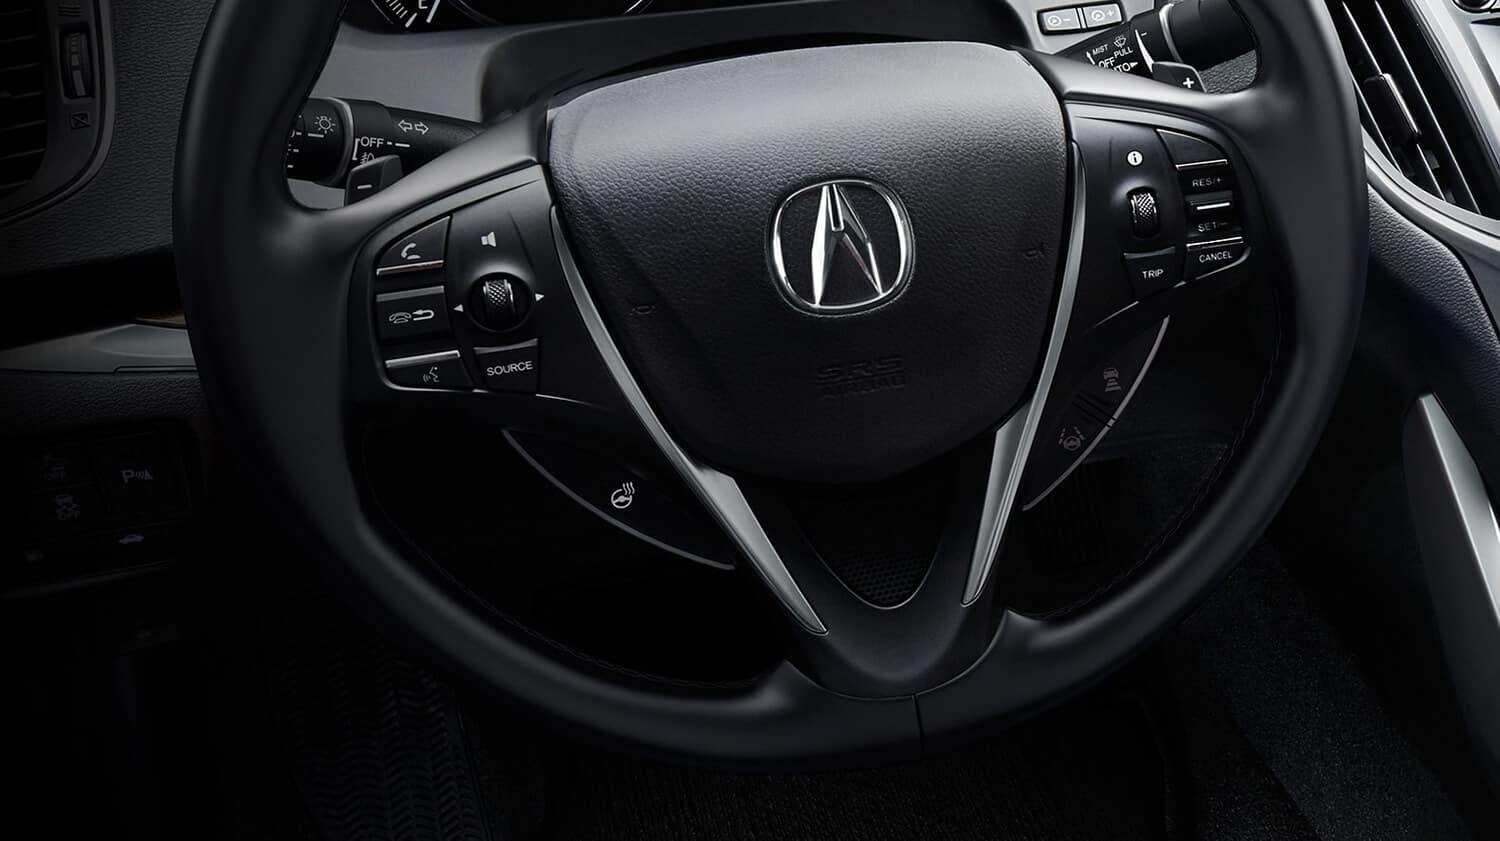 2019 Acura TLX Interior Steering Wheel Closeup